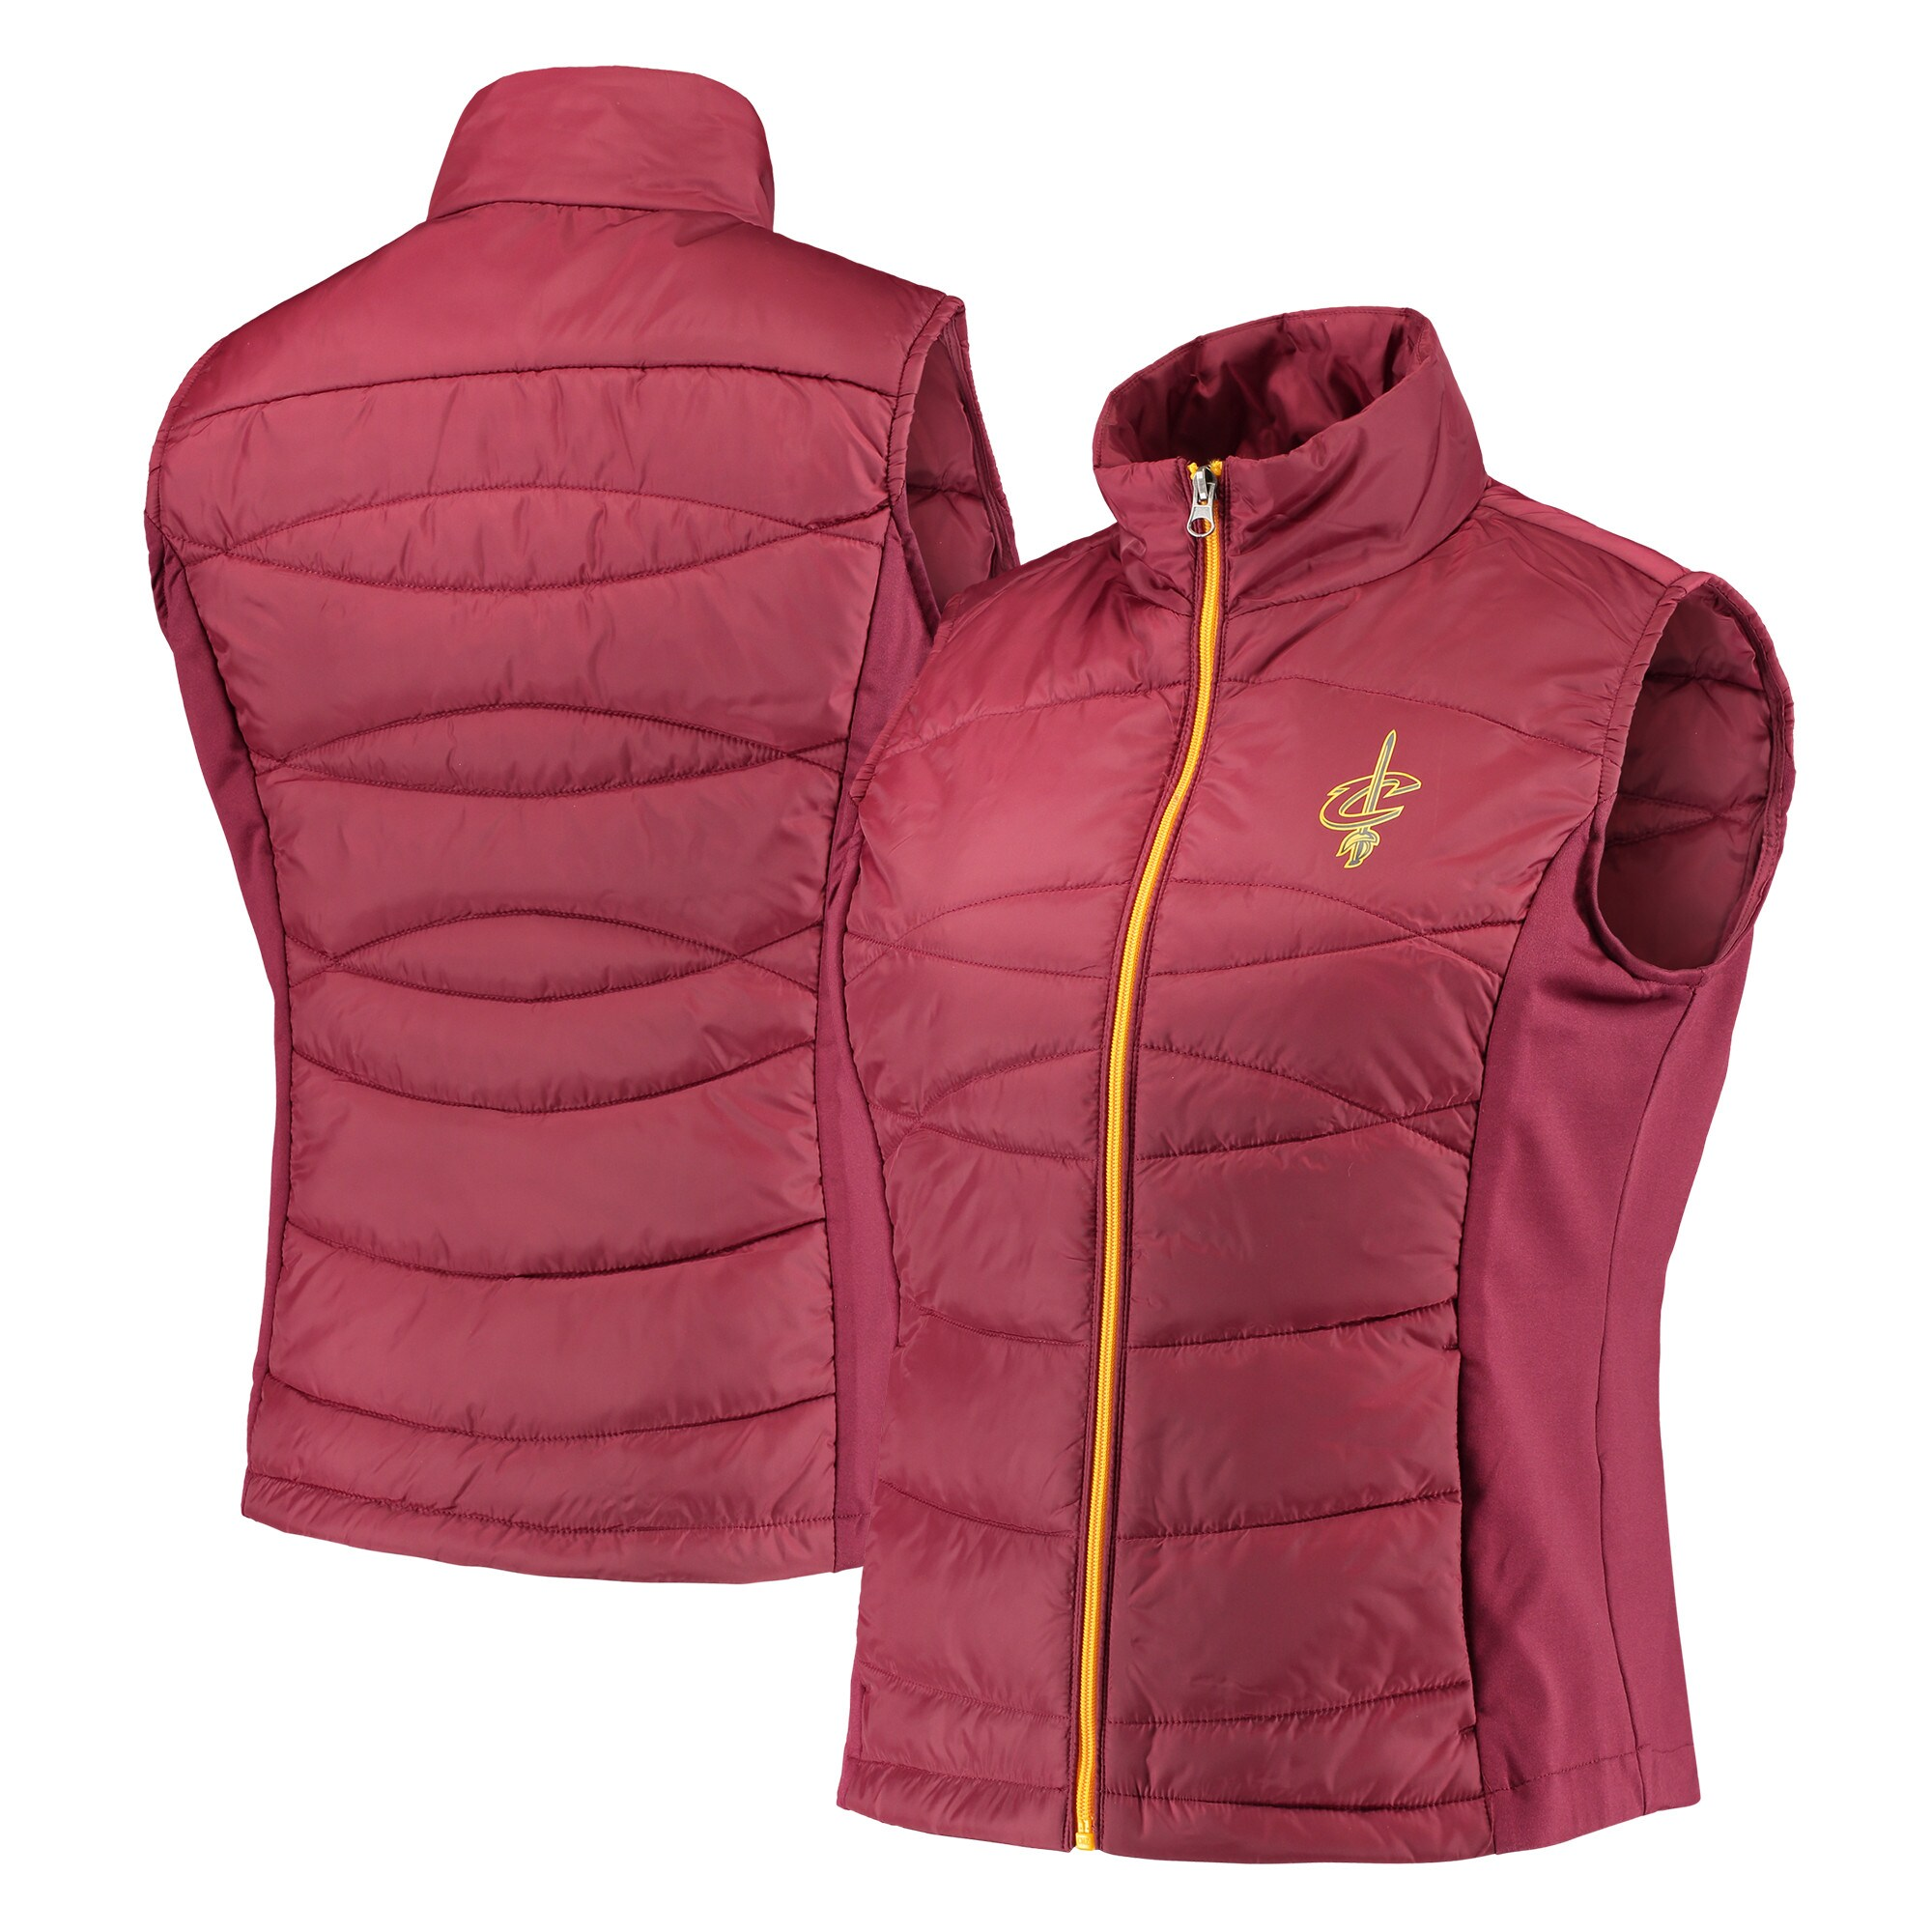 Cleveland Cavaliers G-III 4Her by Carl Banks Women's Wing Back Lightweight Polyfill Vest - Wine